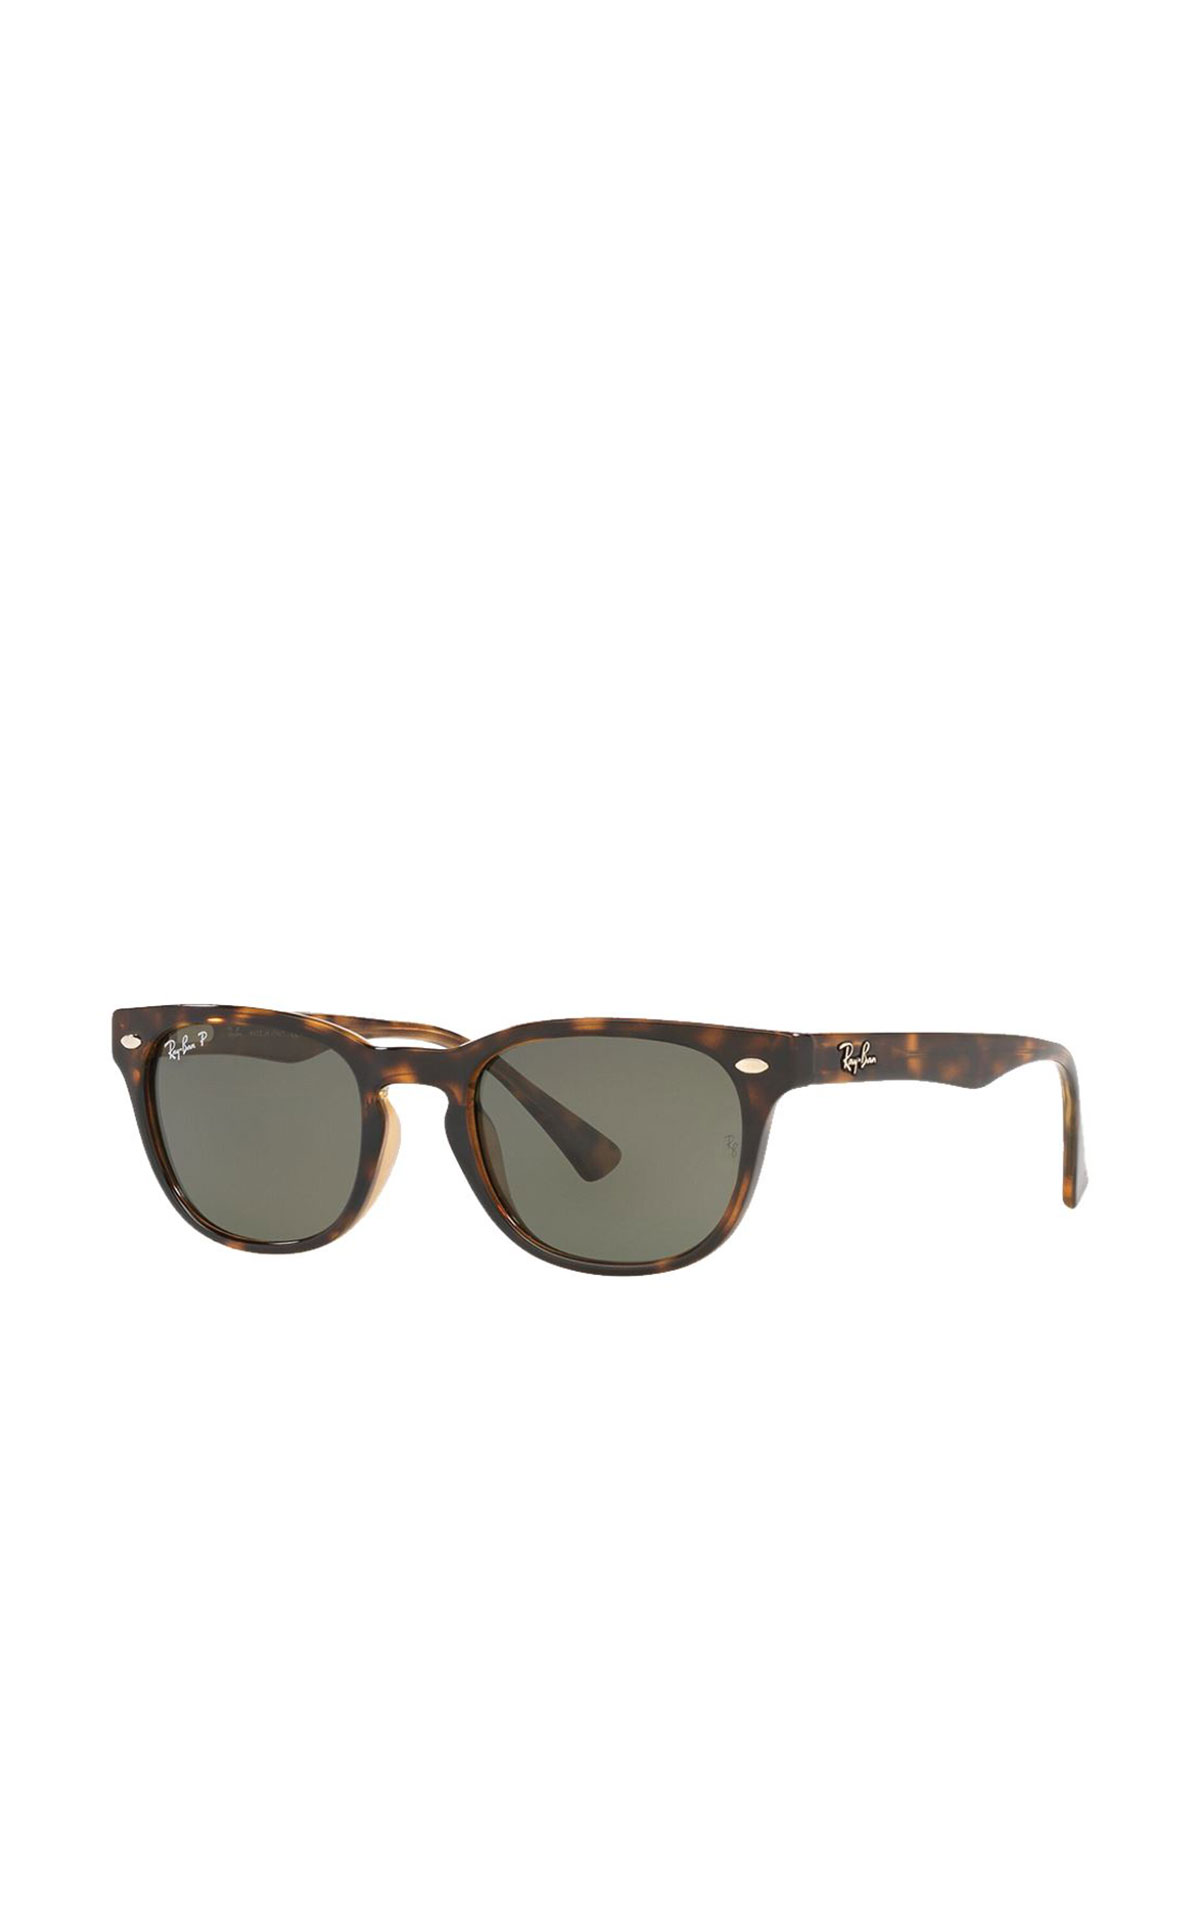 David Clulow Ray-Ban 0RB4140 from Bicester Village